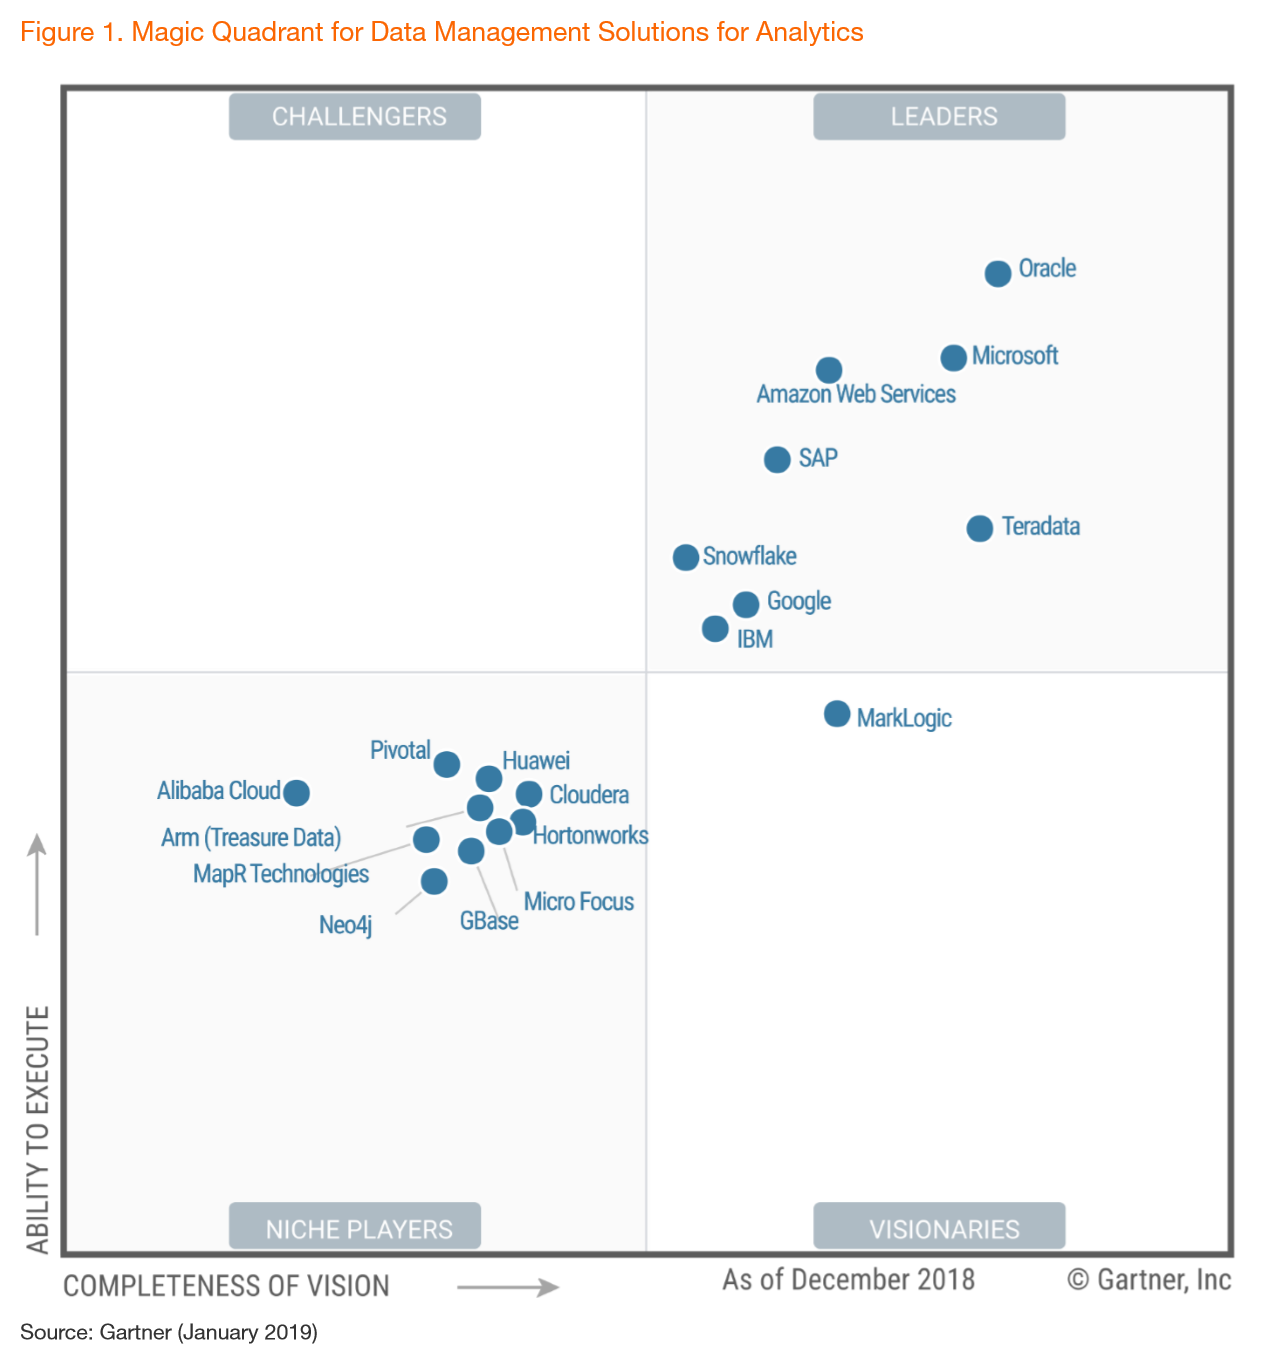 2019 Gartner Magic Quadrant for Data Management Solutions for Analytics